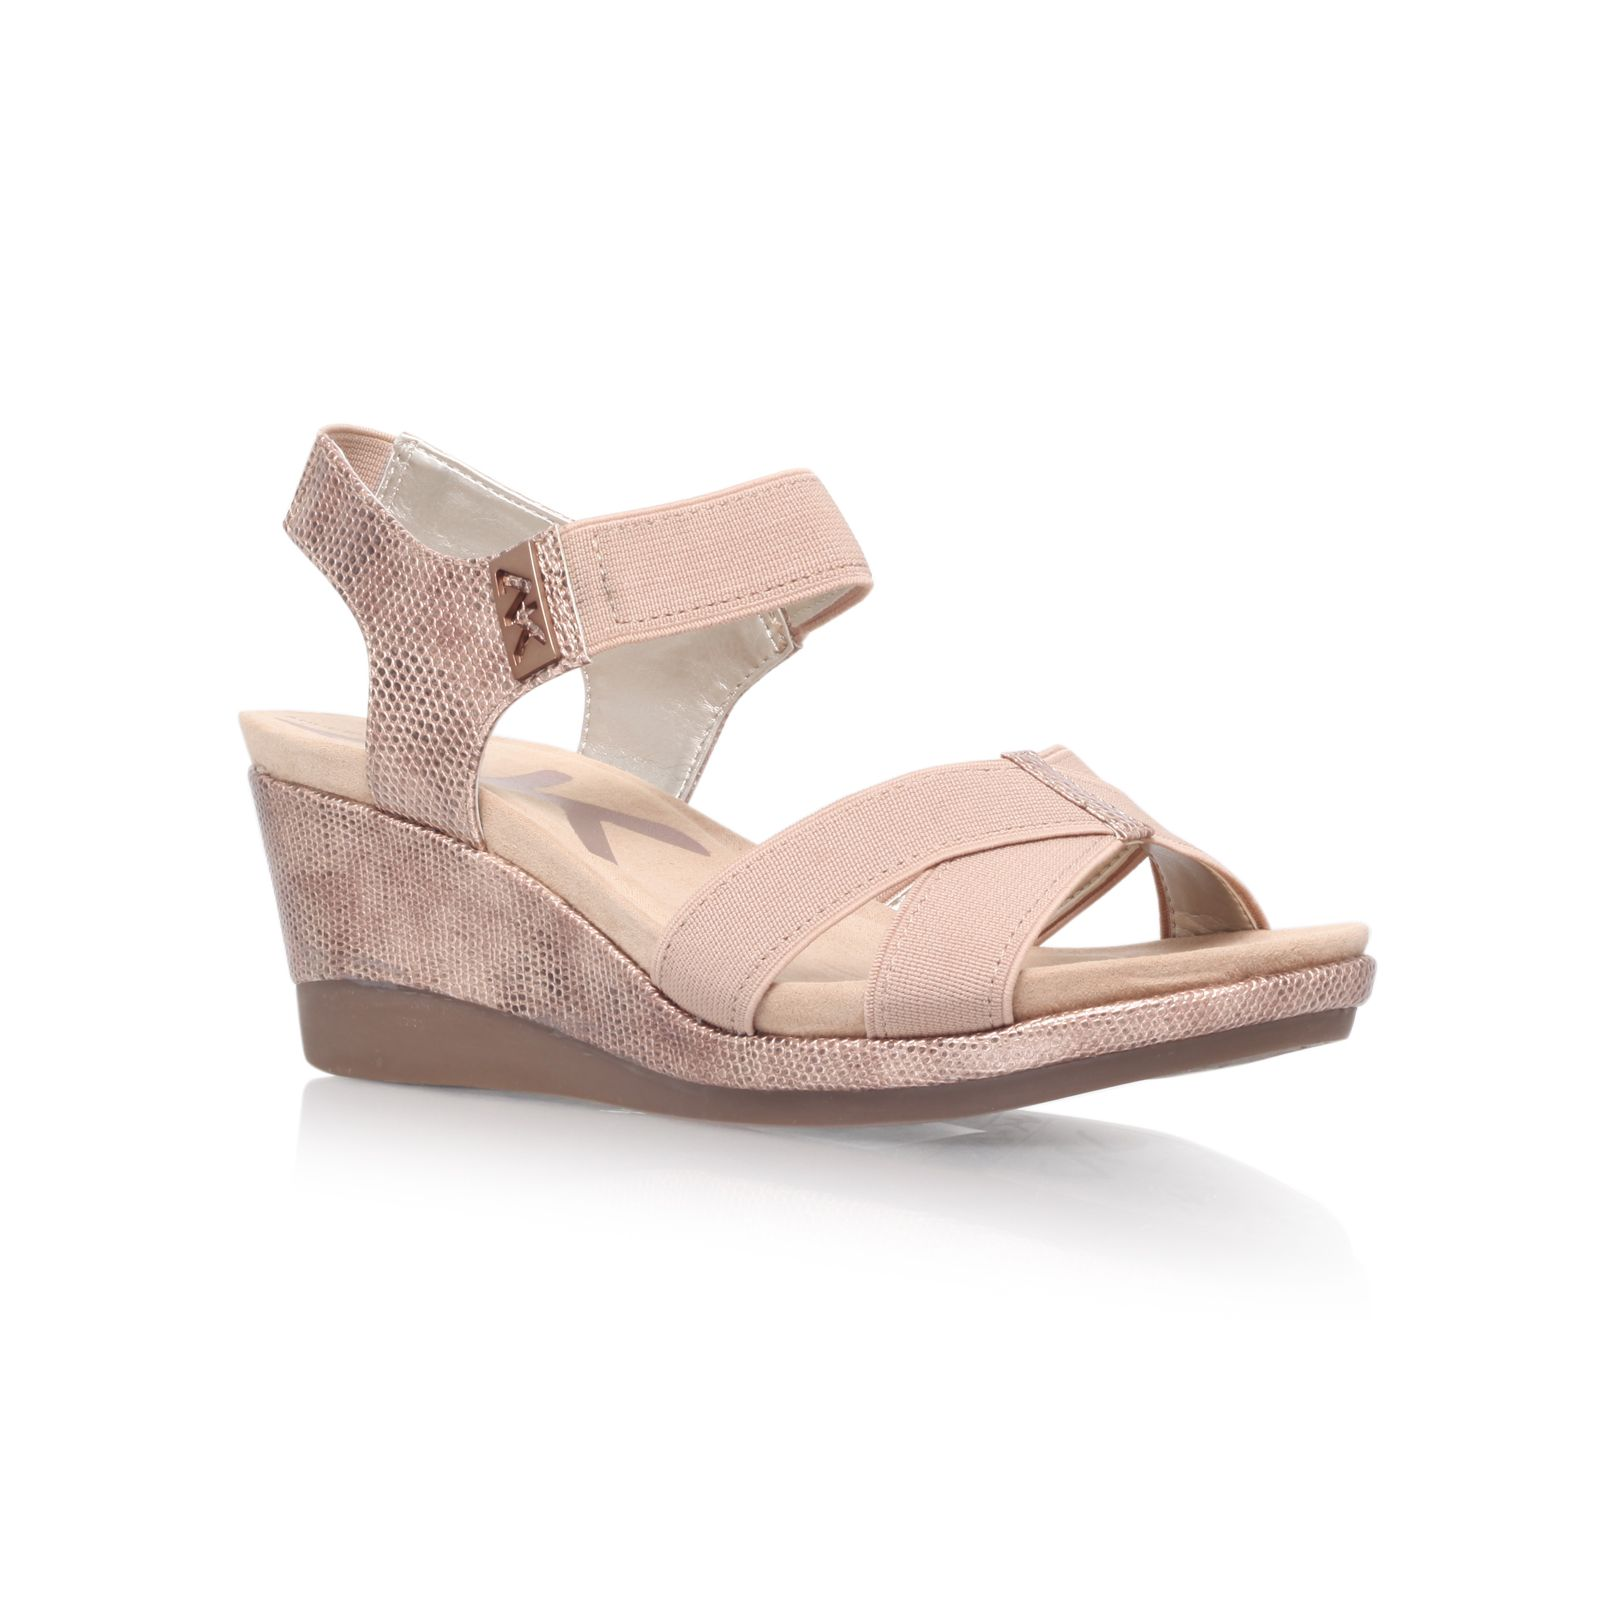 Pakuna2 mid heeled summer wedge